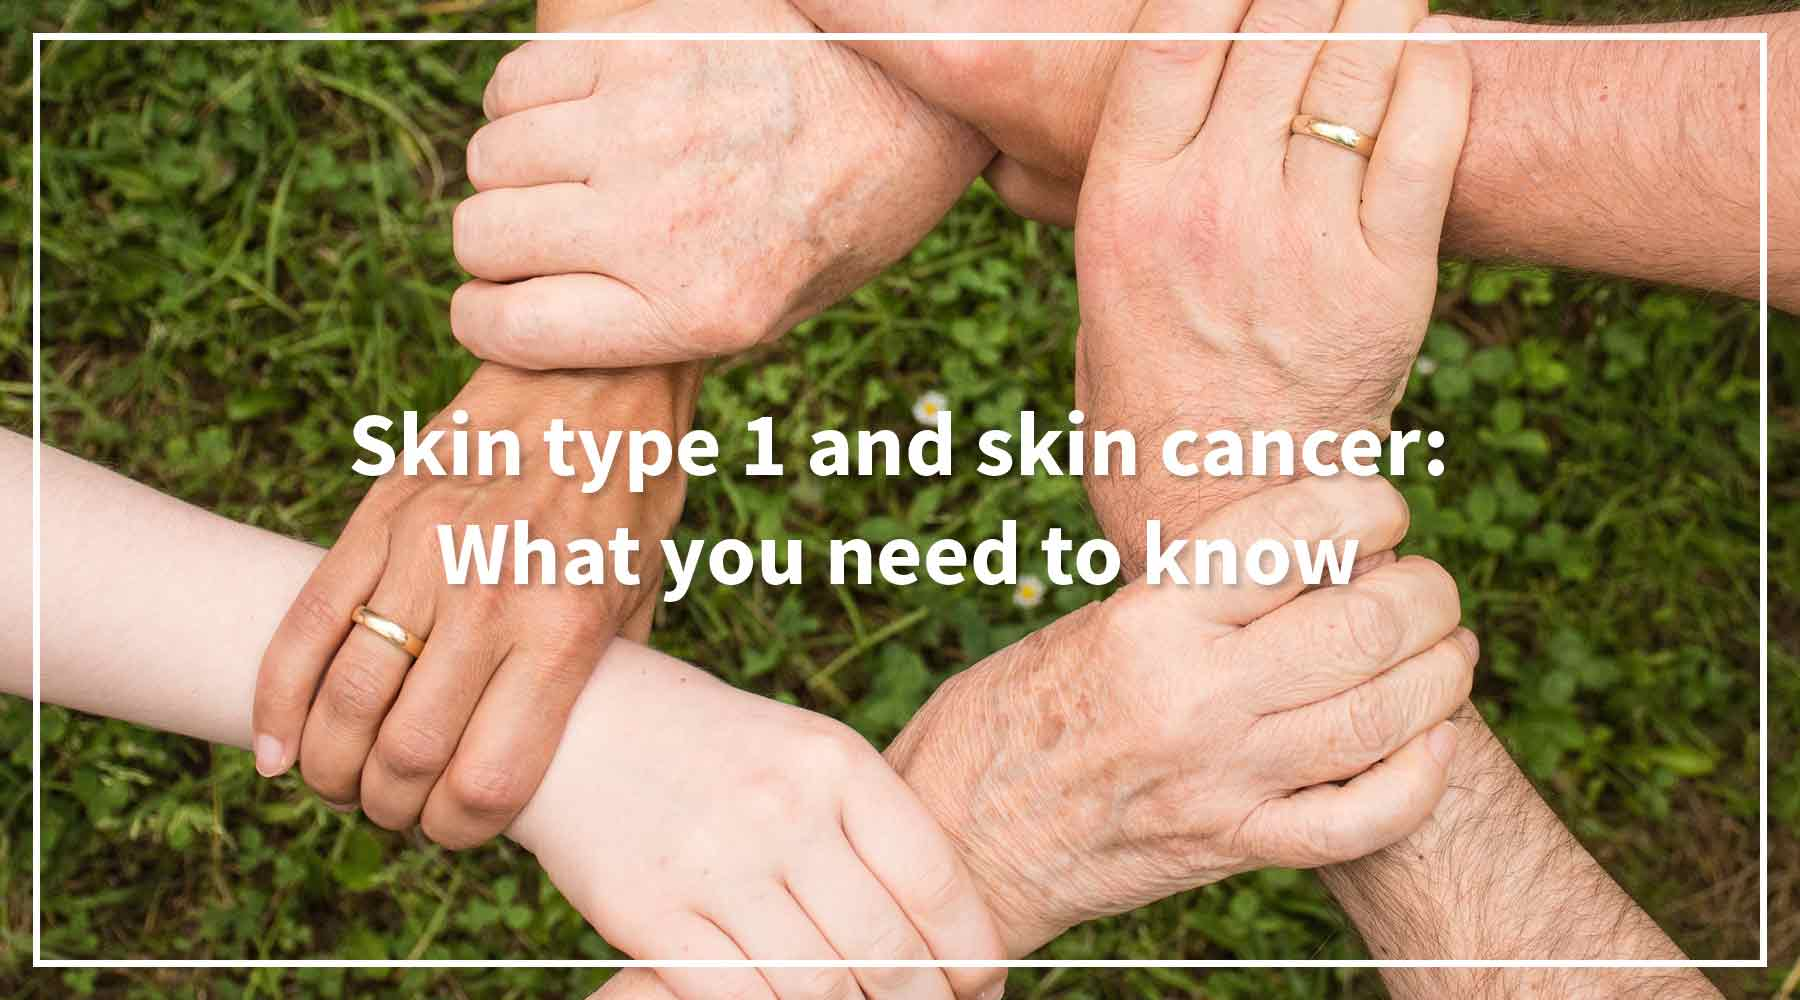 Solbari blog: Skin type 1 and skin cancer: What you need to know